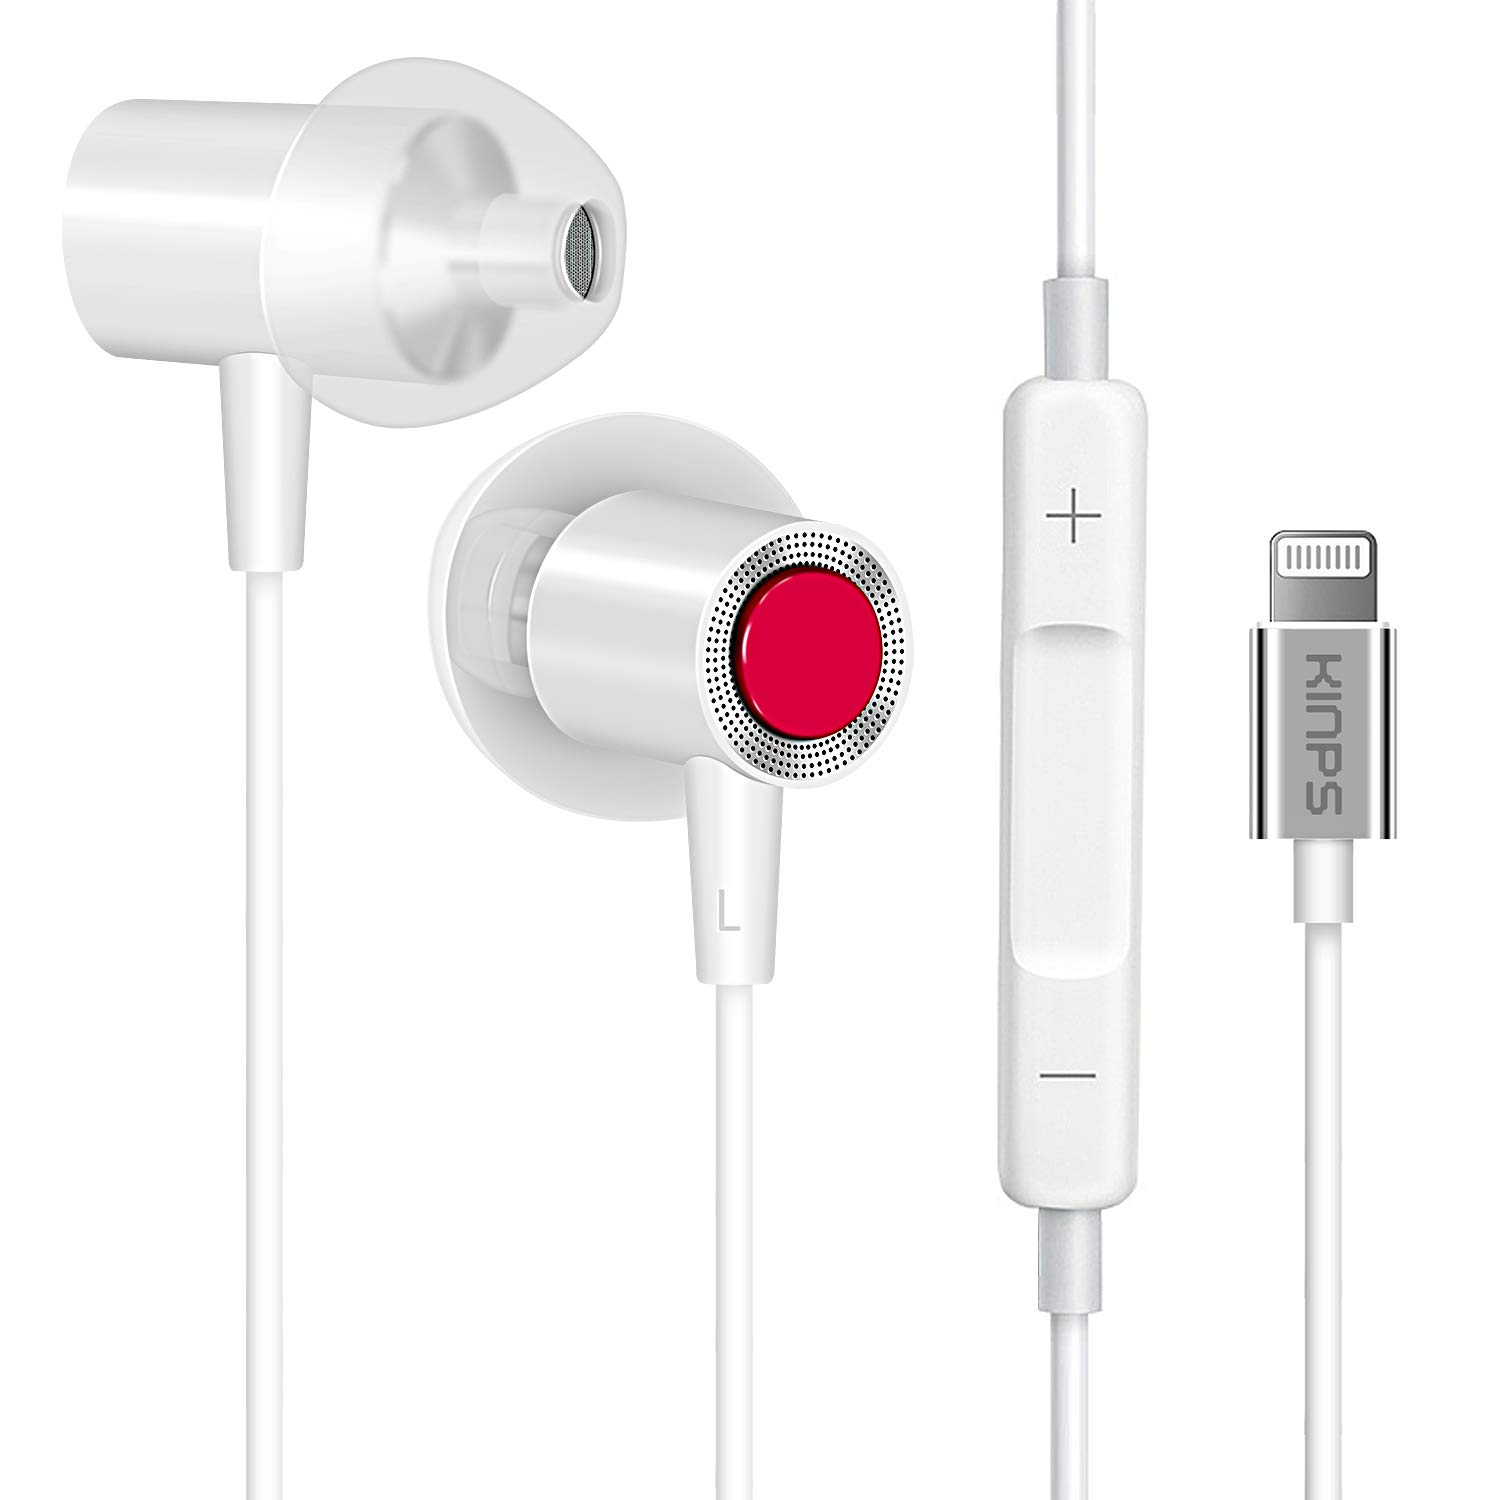 KINPS Apple MFI Certified Earphones Earbuds with Lightning Connector, EarPods with Microphone and Remote Control Compatible with iPhone 11 Pro 11 X XS Xs Max XR 8 7 and so on White